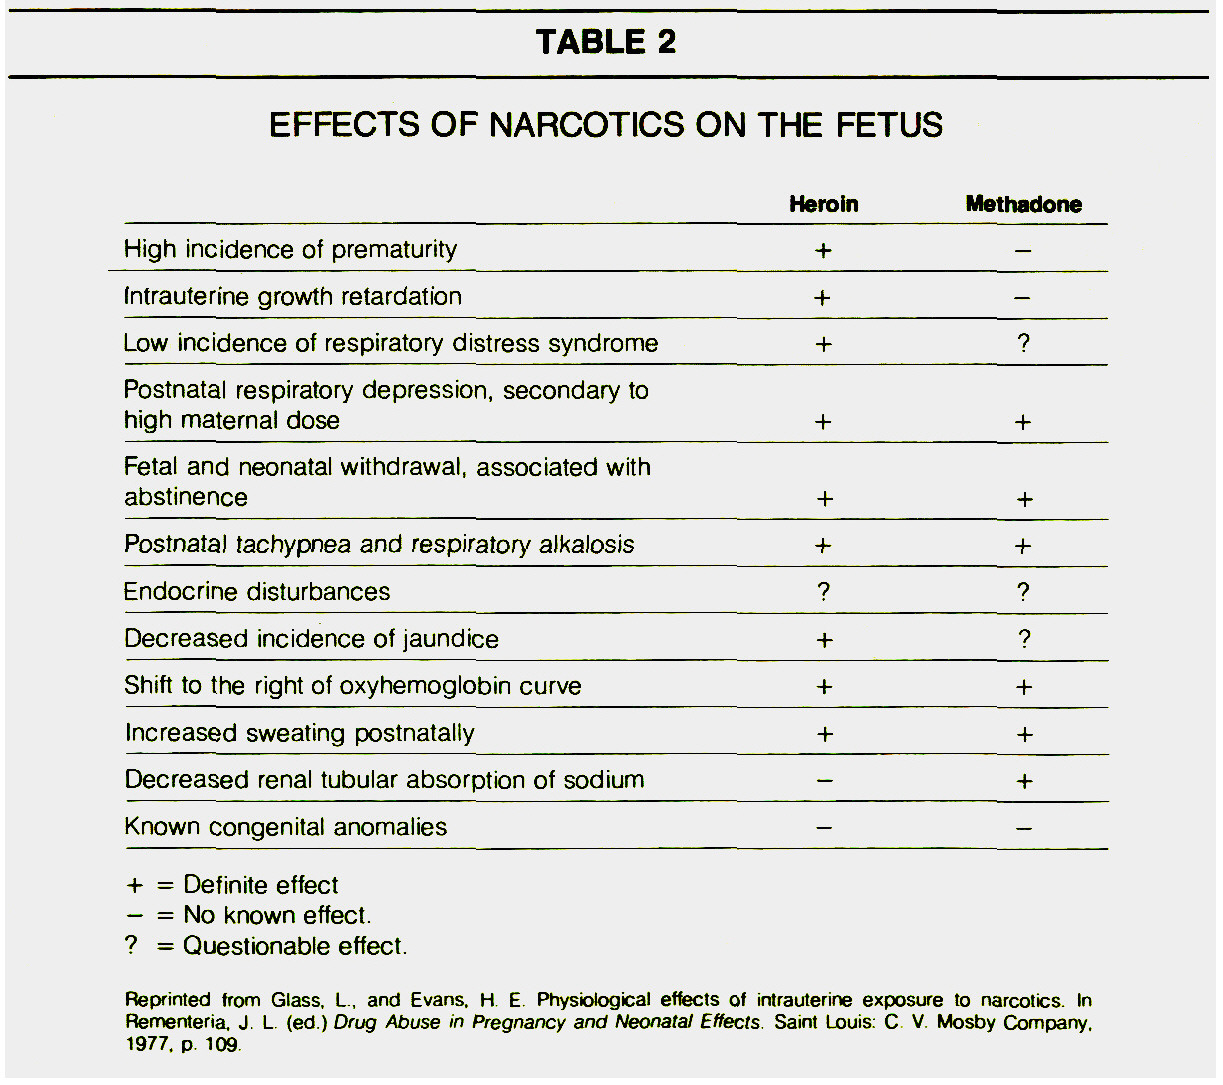 TABLE 2EFFECTS OF NARCOTICS ON THE FETUS